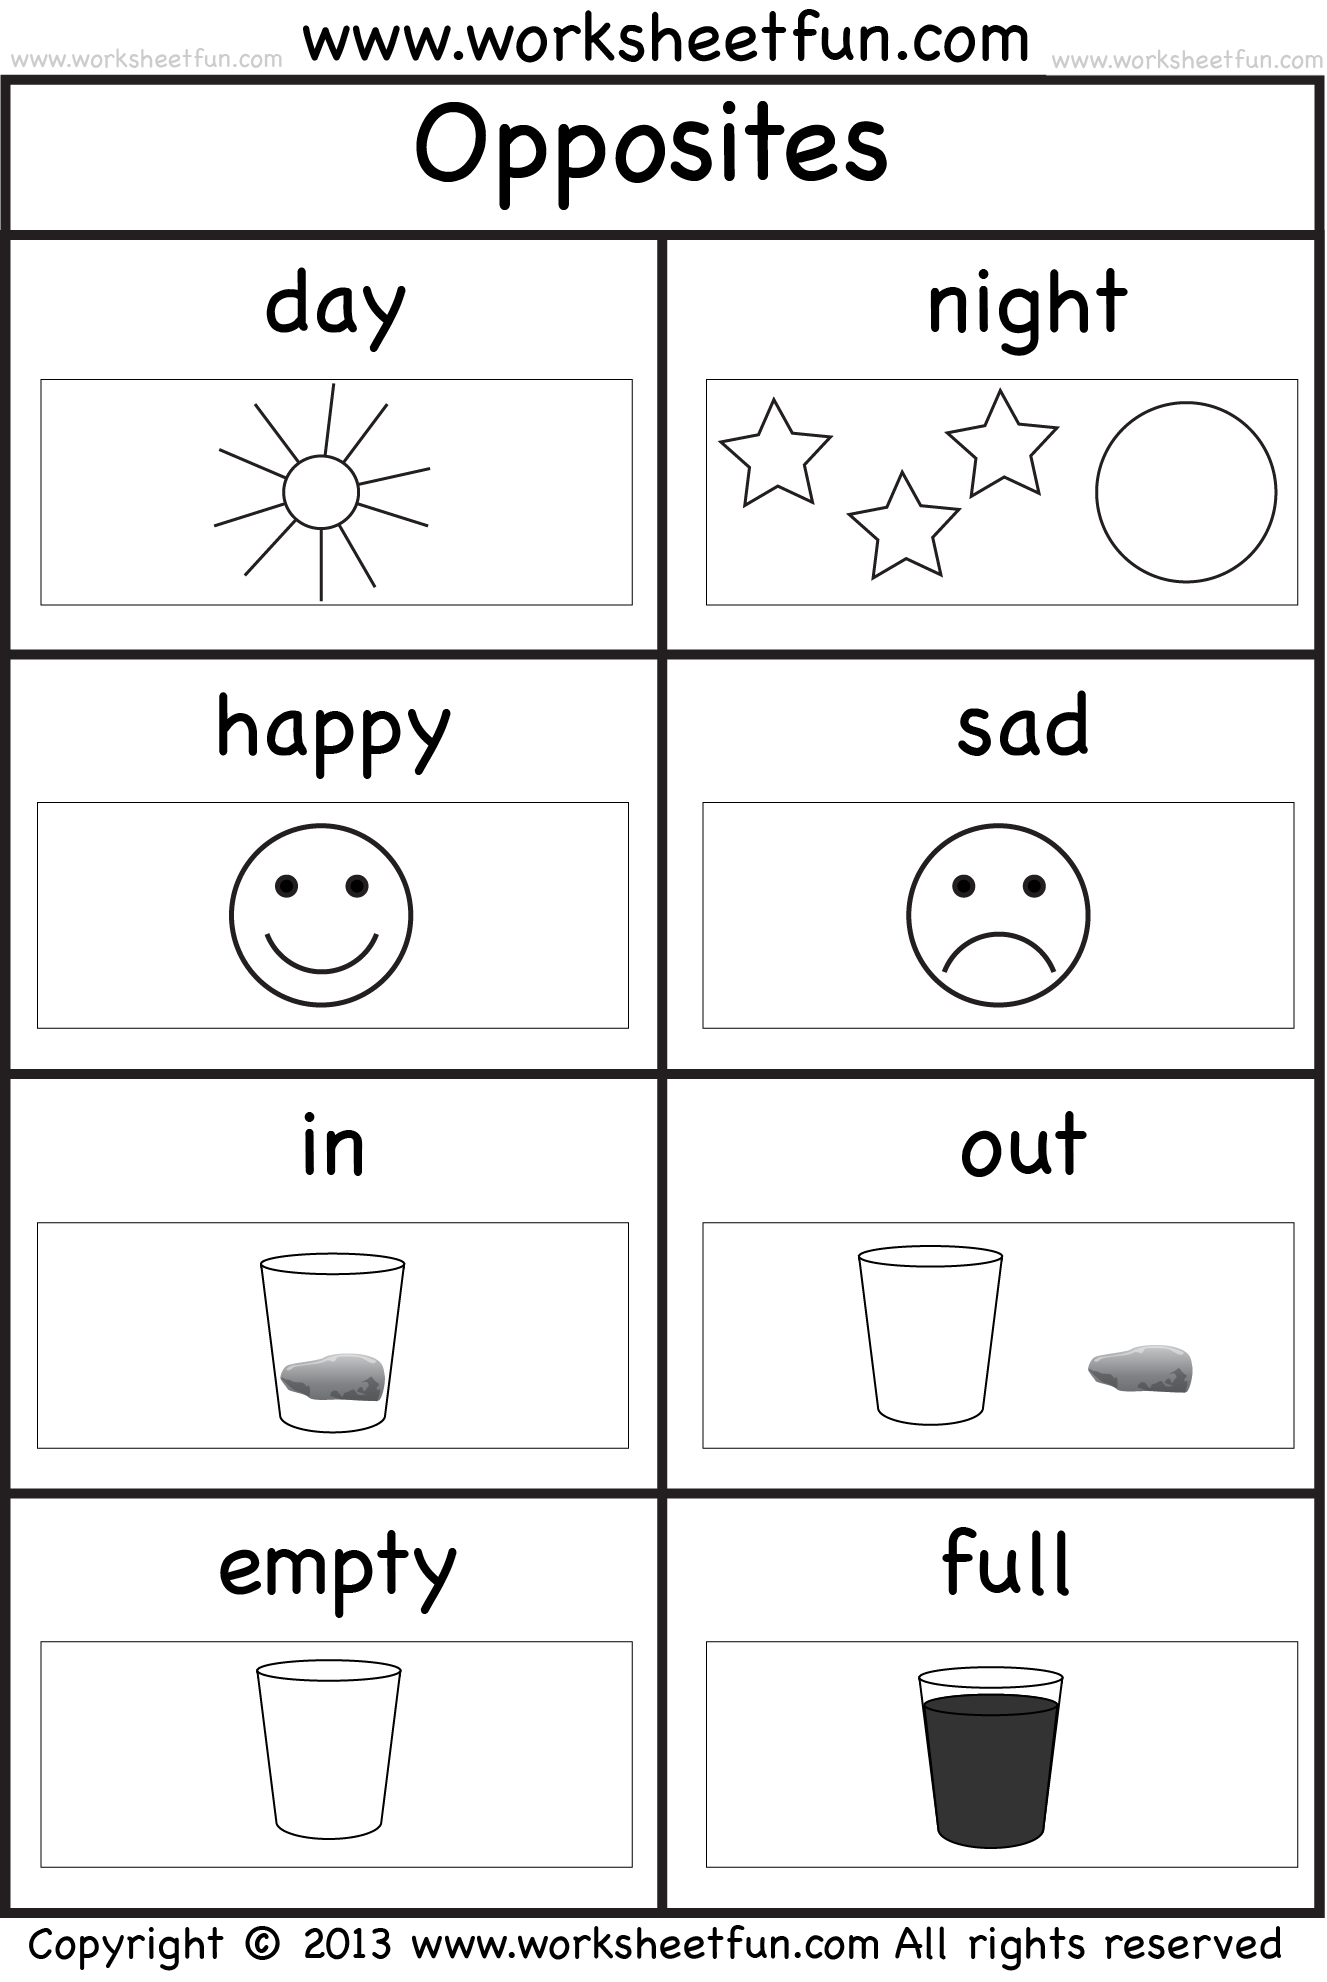 Pin by Jessica Barragan-Rodriguez on Kinder | Kindergarten ...